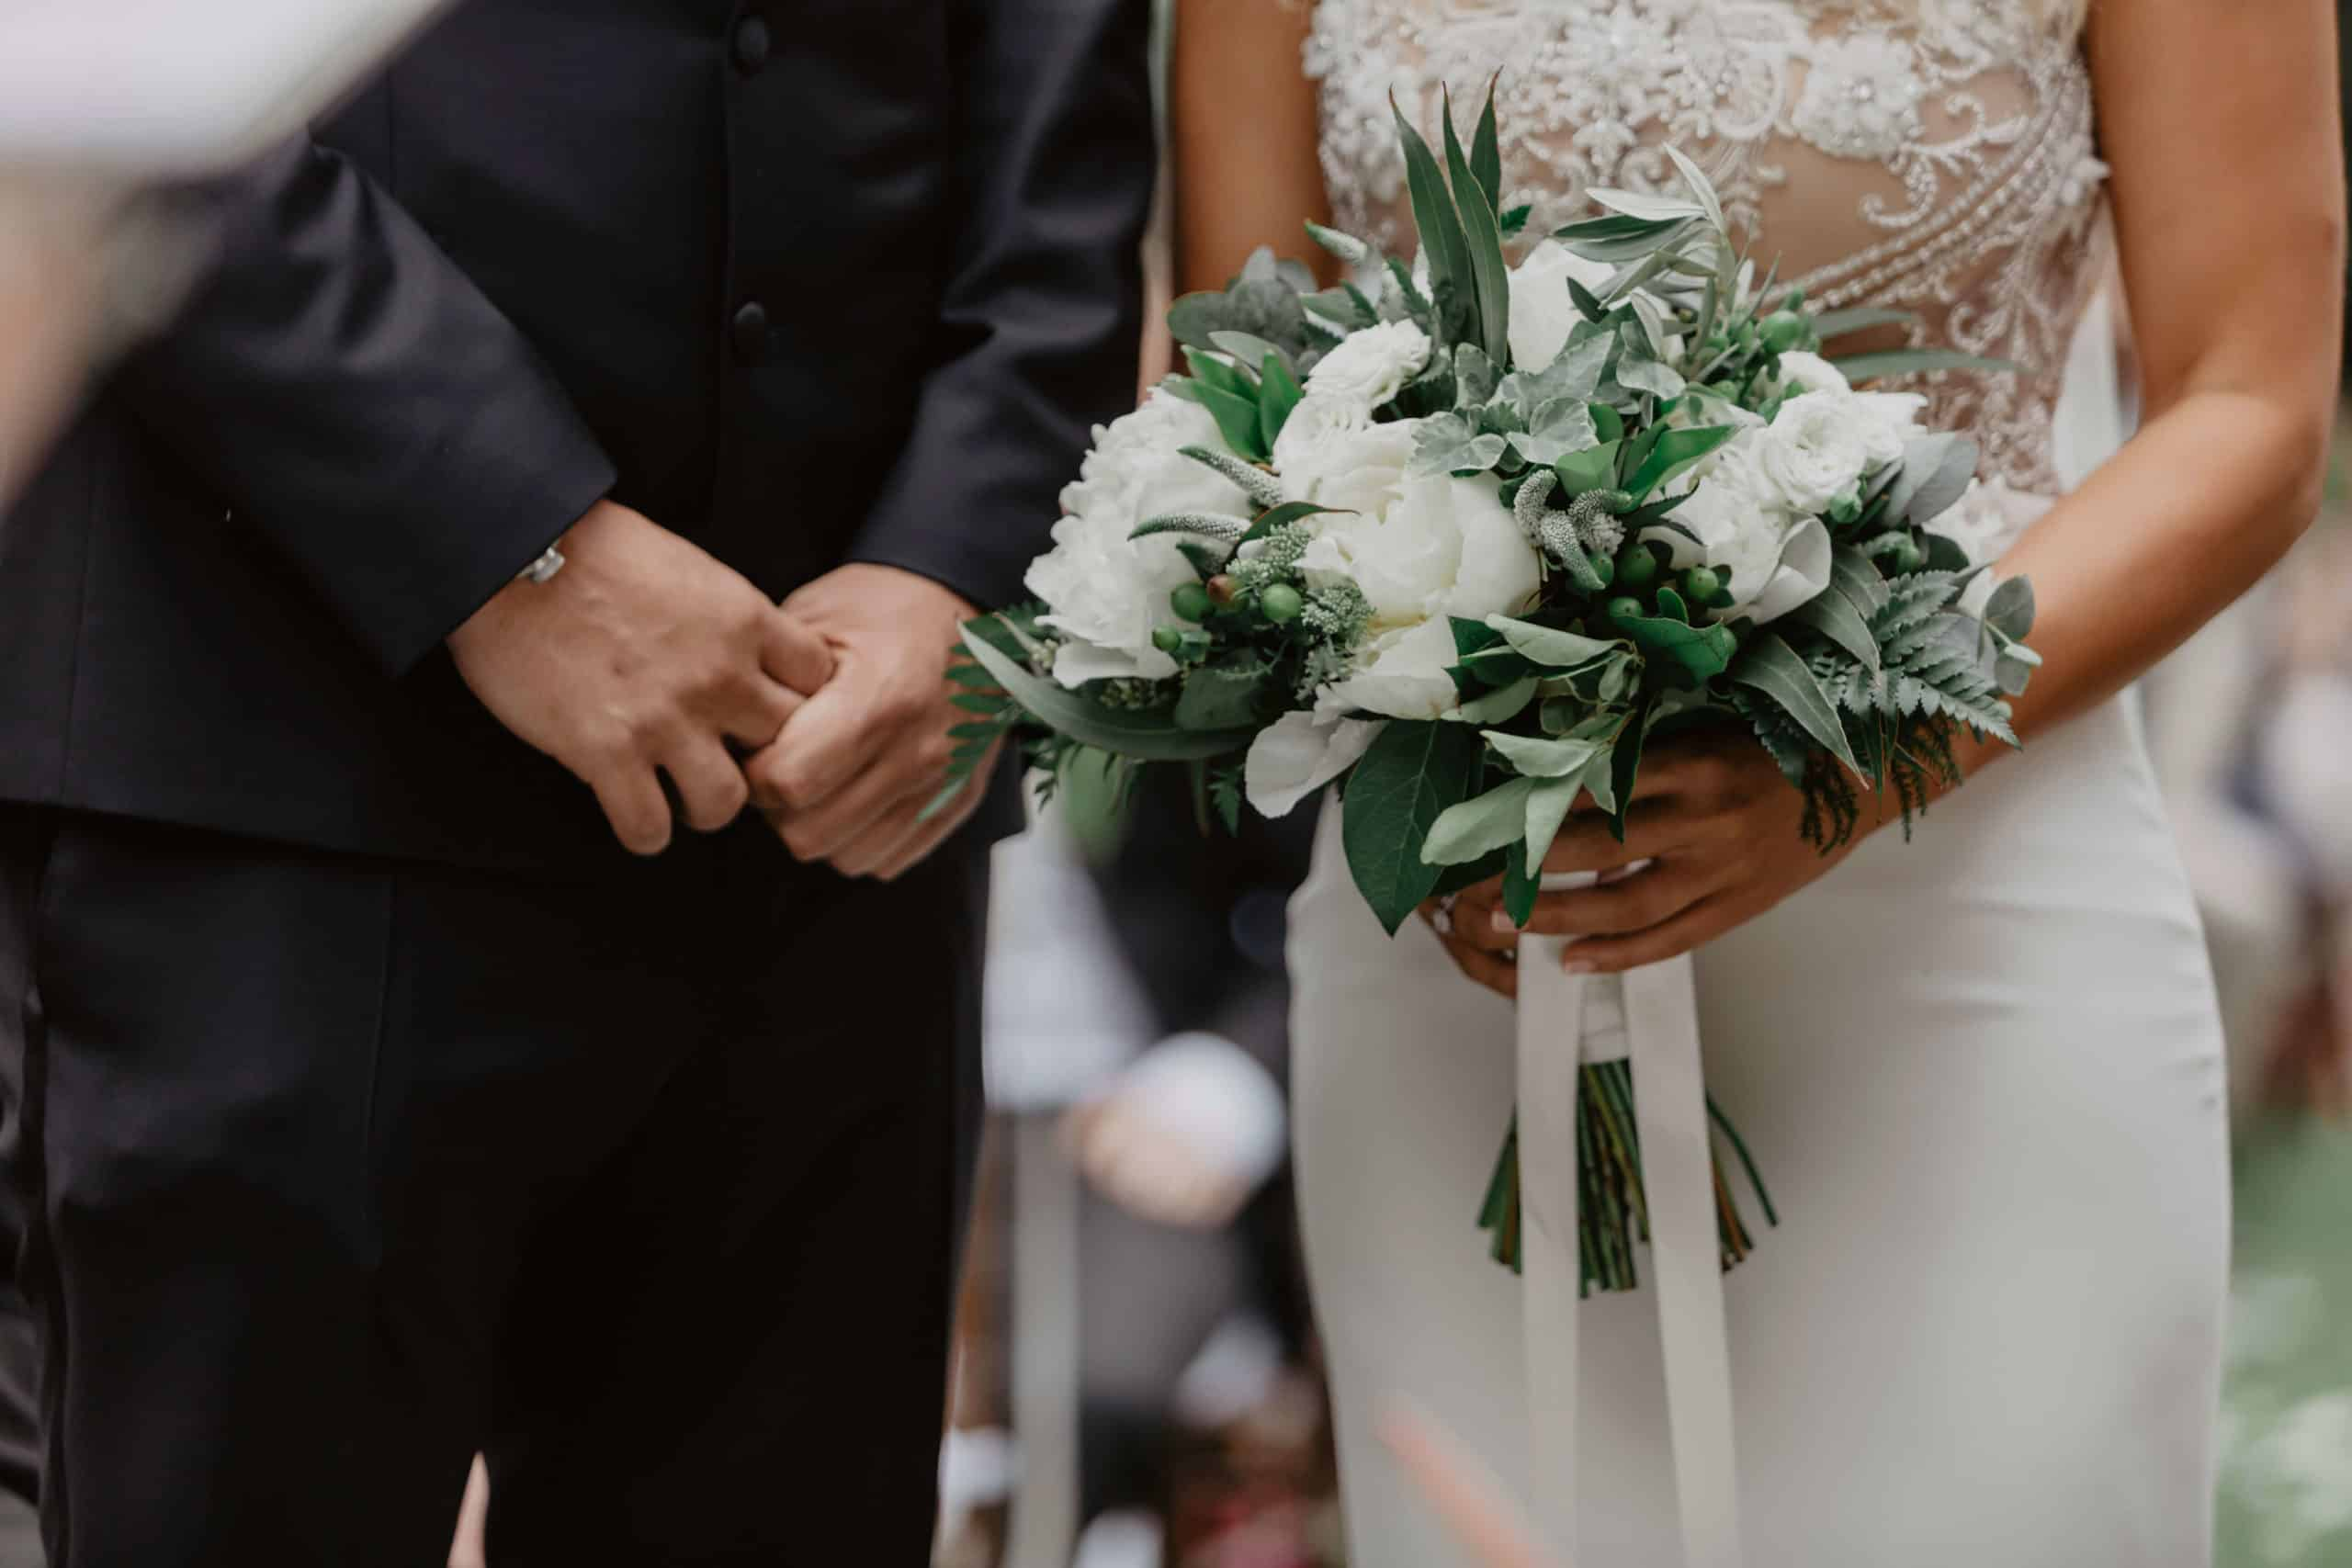 Newlyweds getting married, she has a bouquet of white roses in her hand